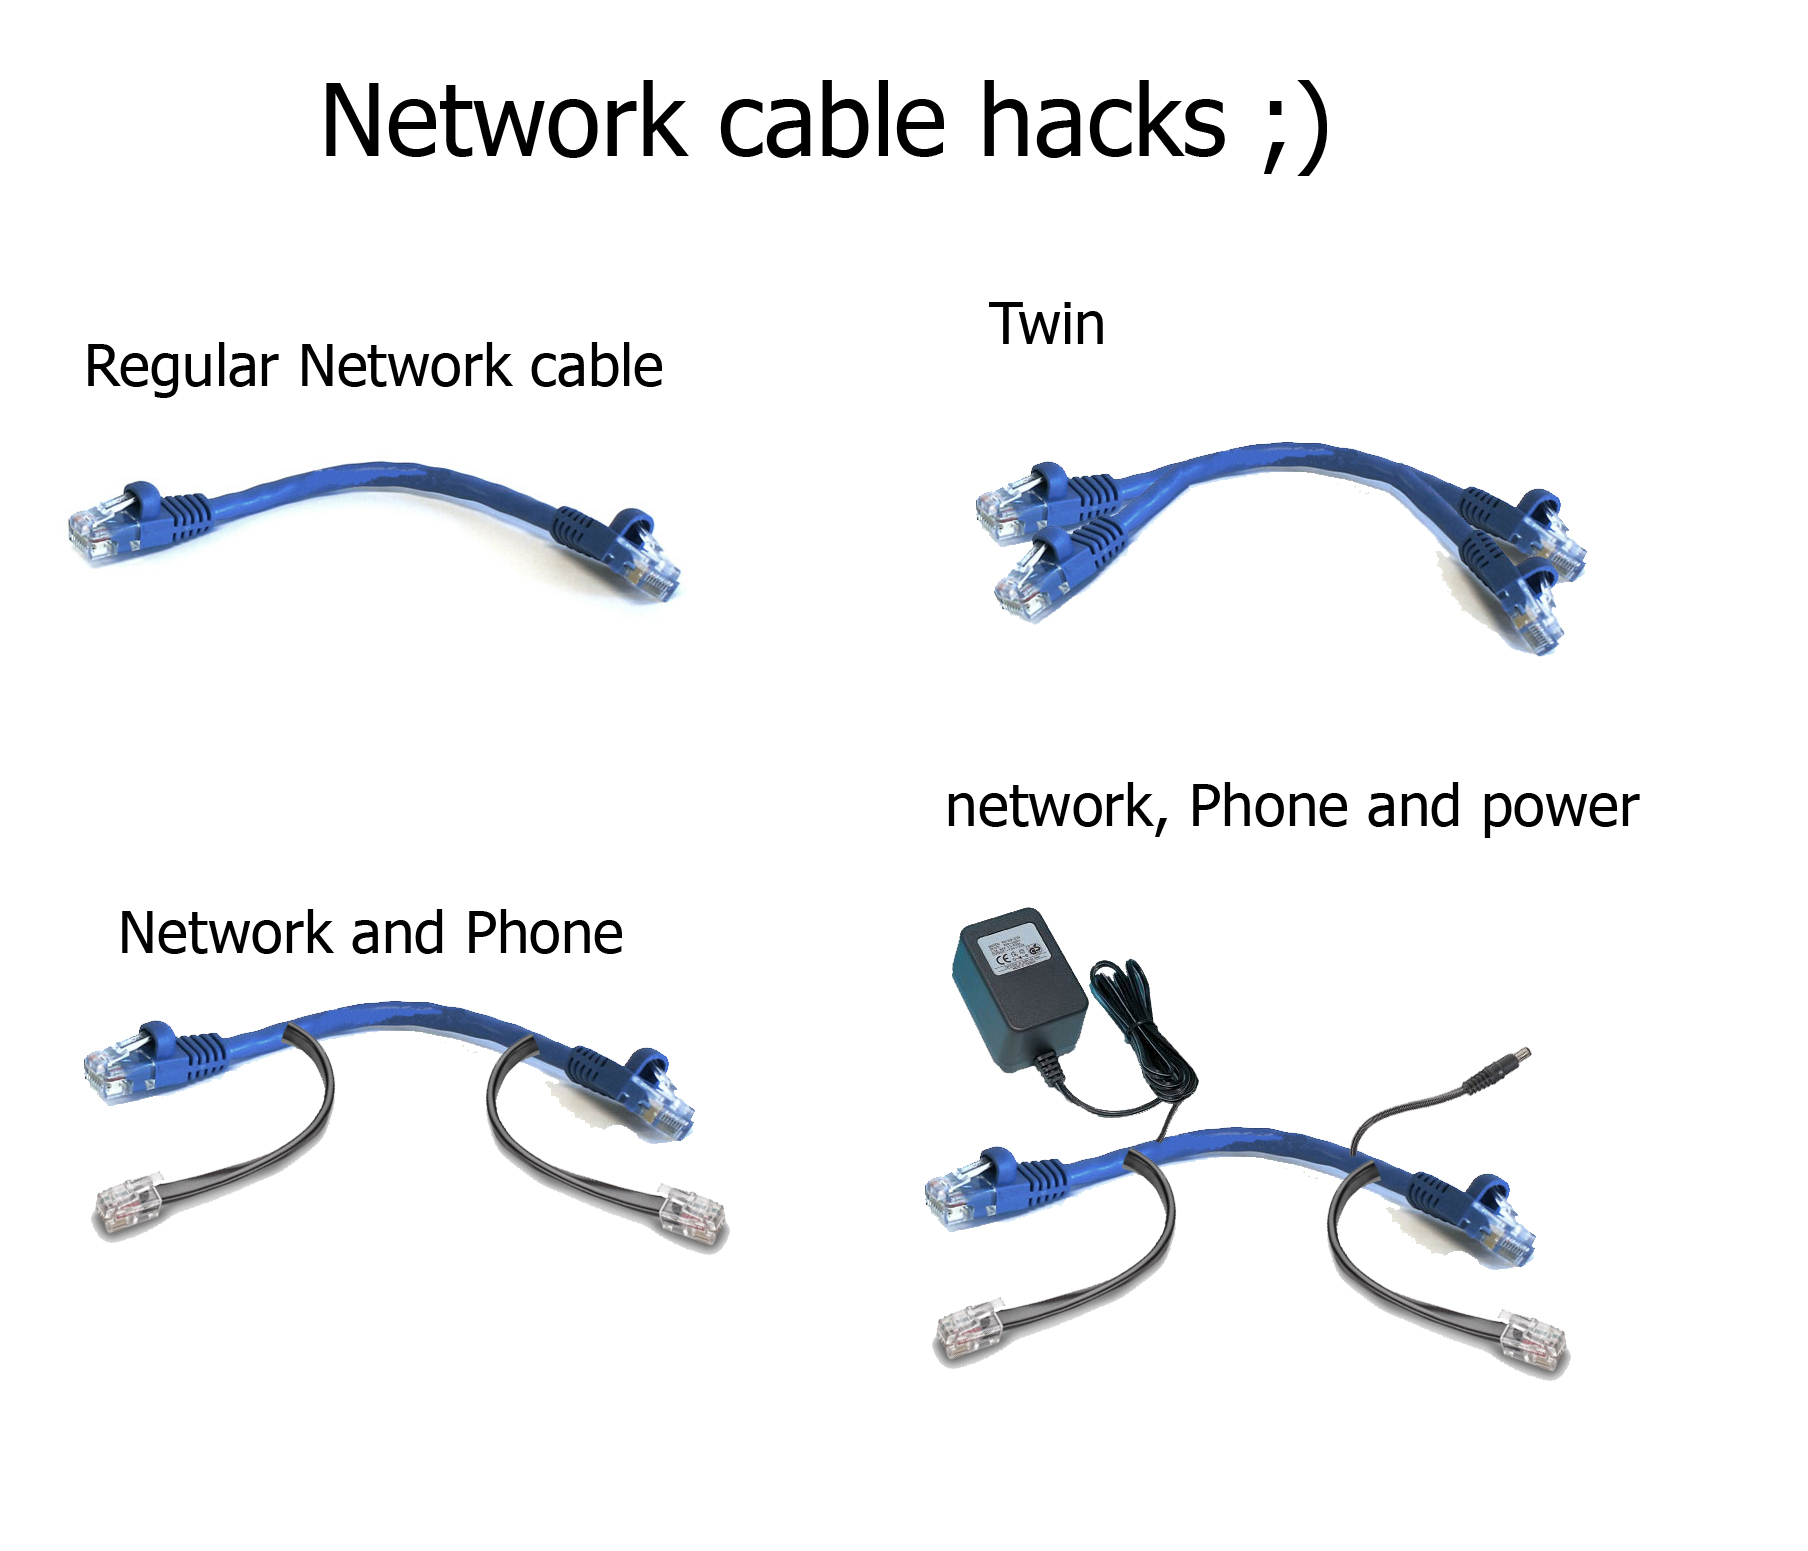 Network Cable hack